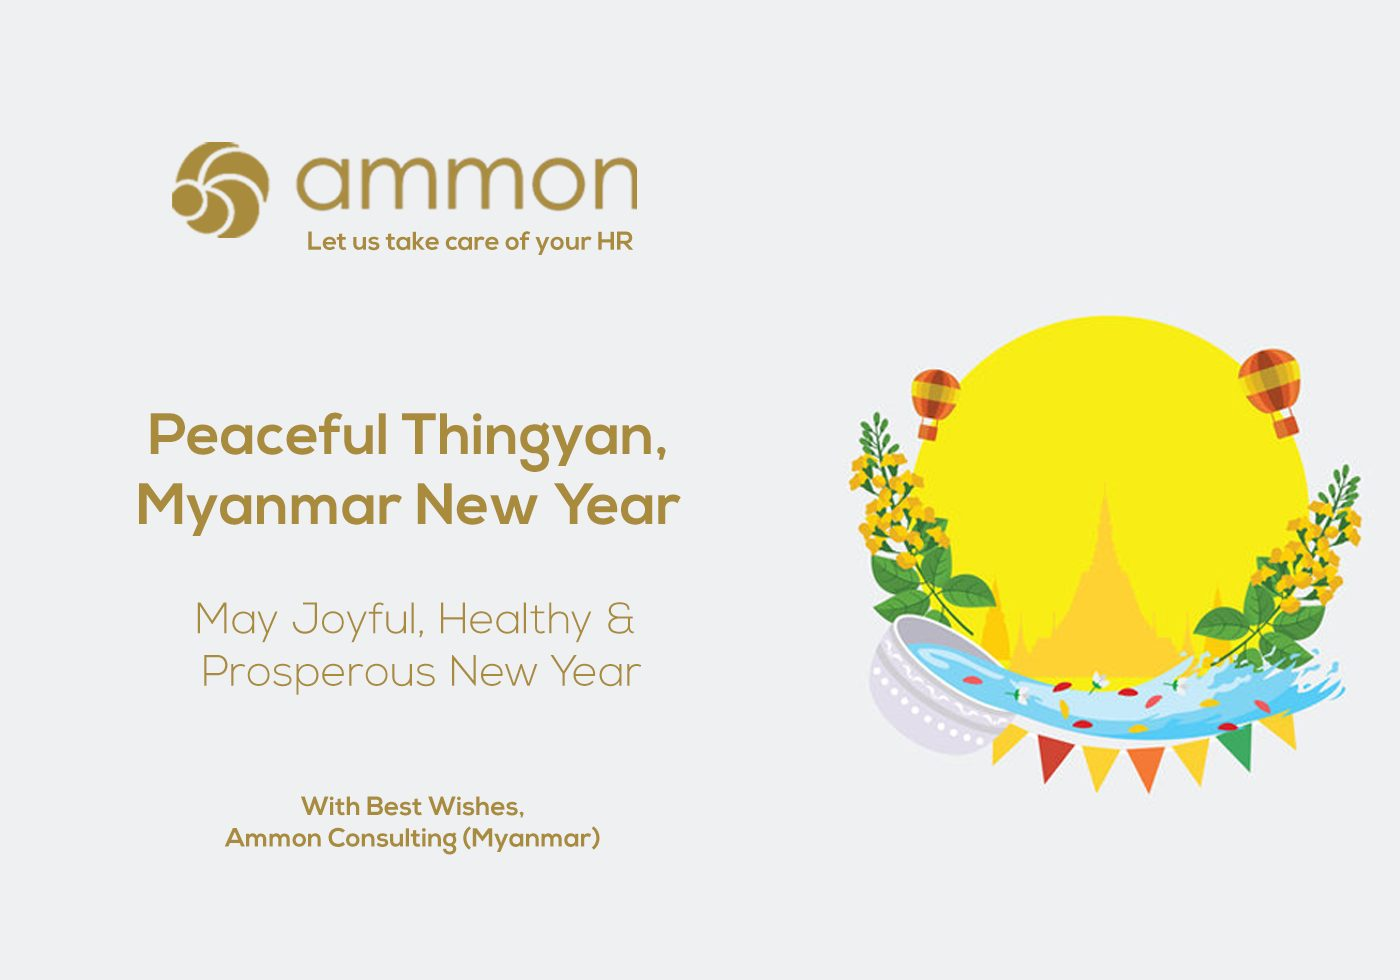 Myanmafr-New-Year-2021-Ammon-Consulting-Myanmar-HR-Outsourcing-Payroll